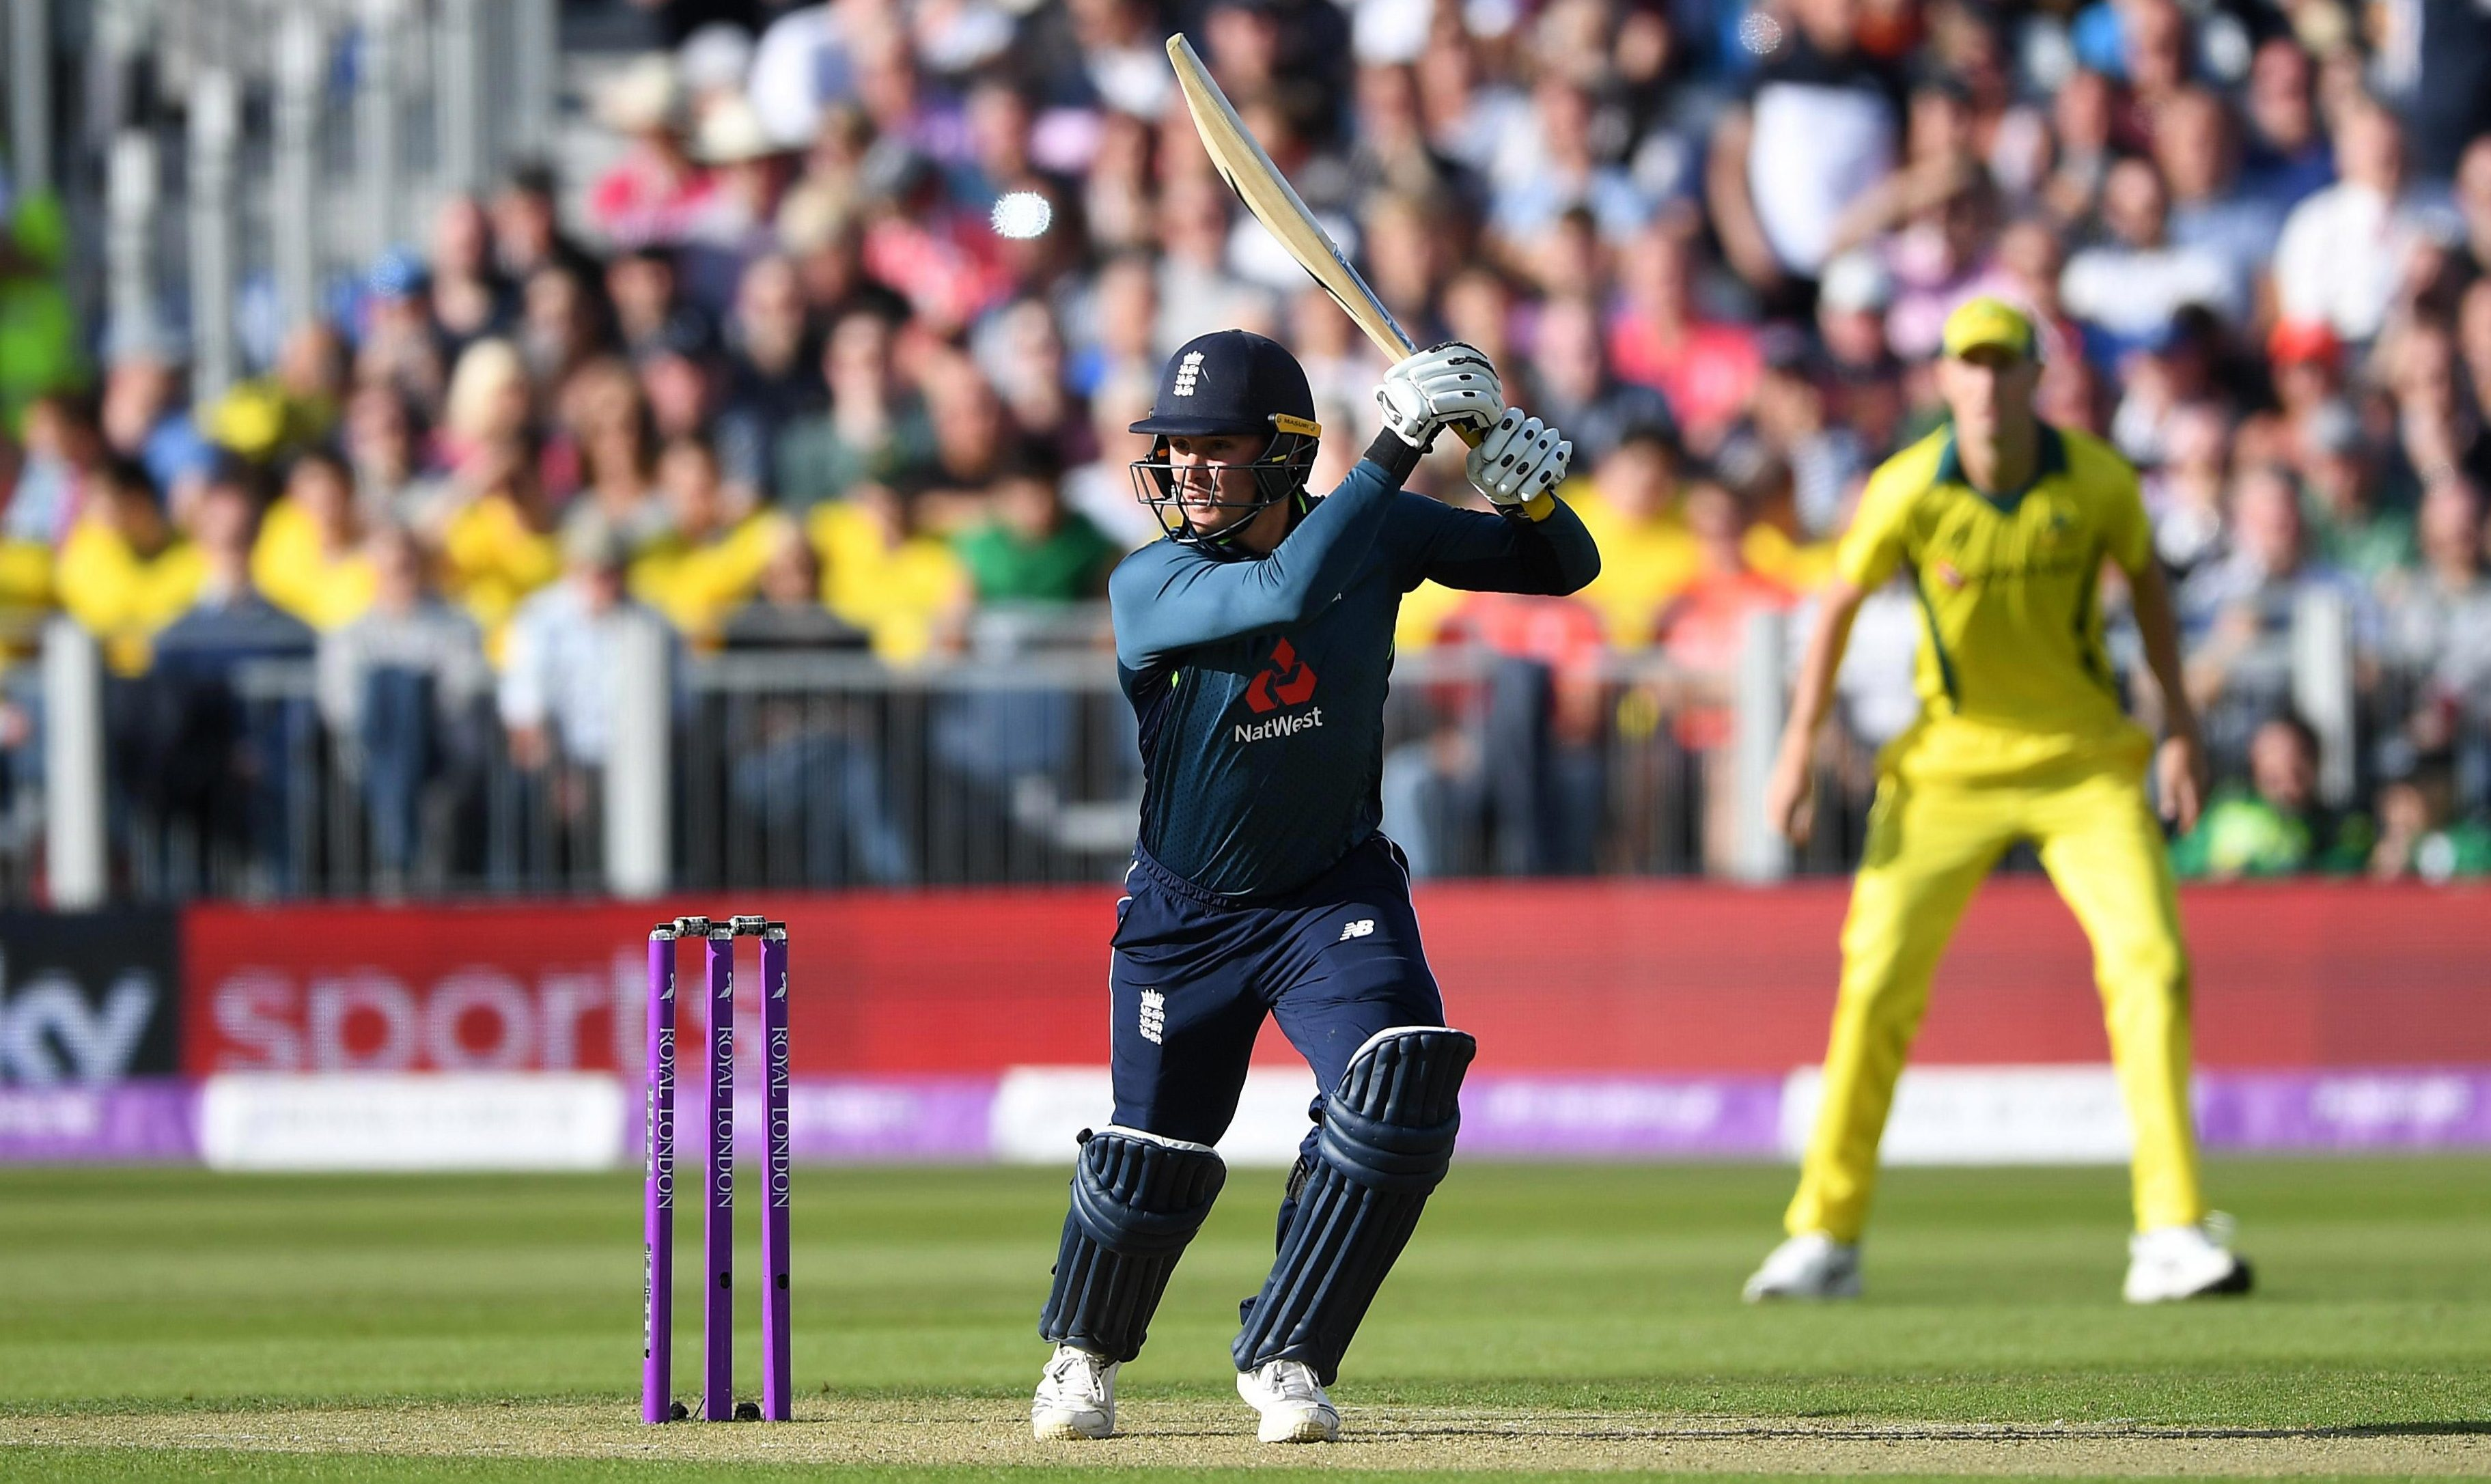 Jason Roy's ton sent England on their way to victory with more than five overs to spare